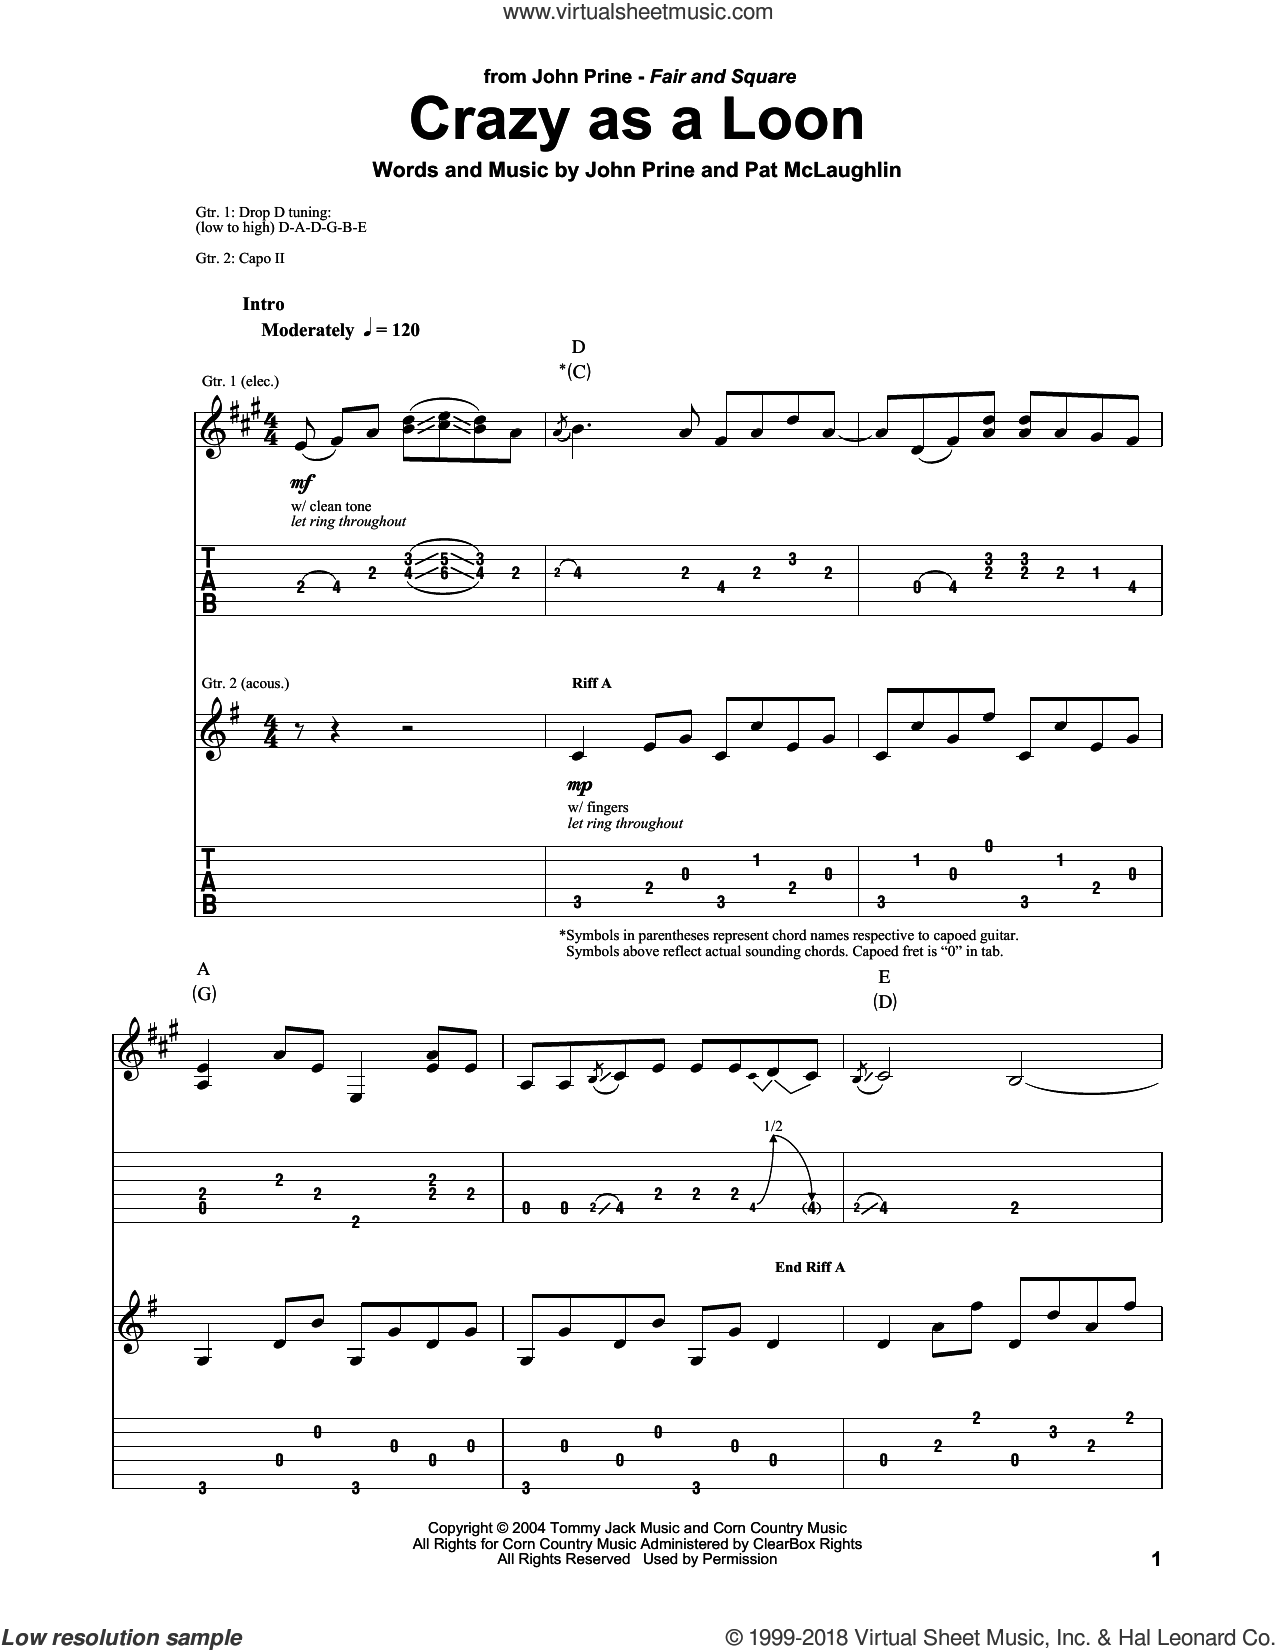 Crazy As A Loon sheet music for guitar (tablature, play-along) by John Prine and Pat McLaughlin, intermediate skill level